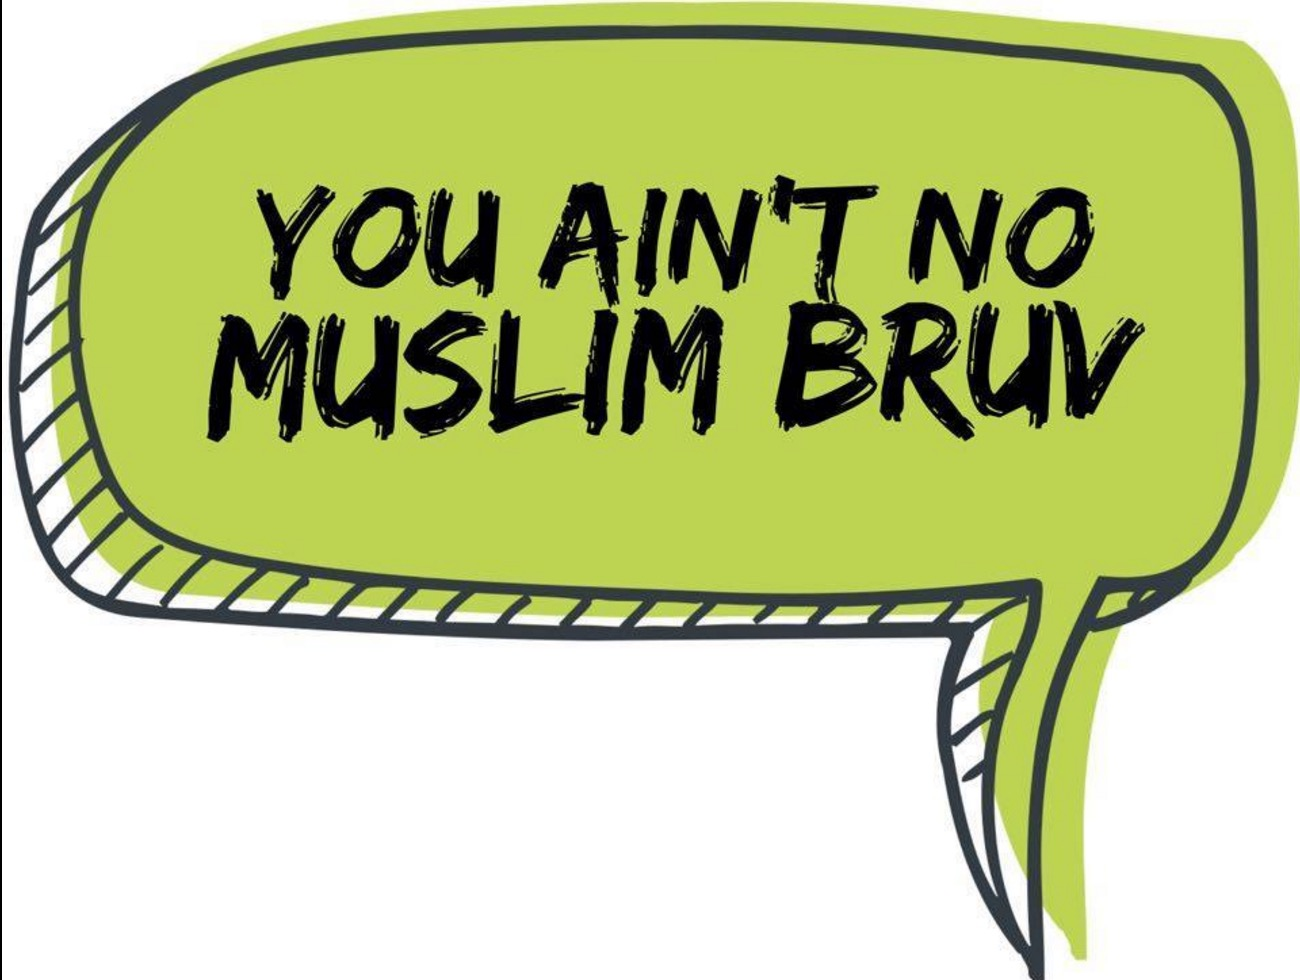 #YouAintNoMuslimBruv - a very British hashtag goes viral after terror attack on London Underground